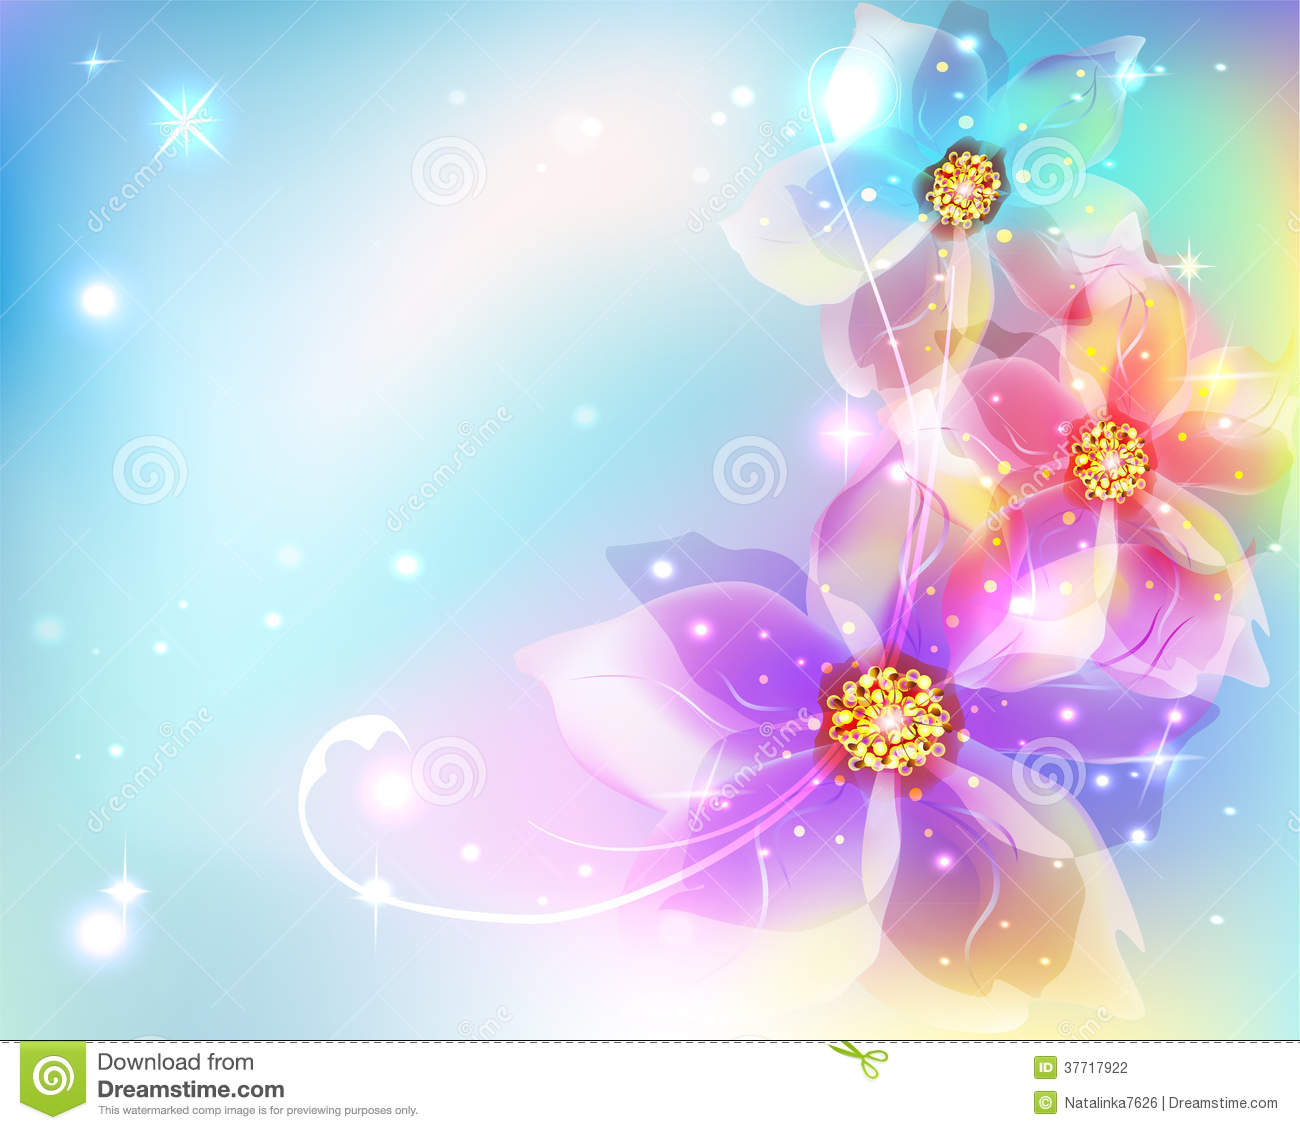 Butterfly Wallpaper For Desktop With Animation Beautiful Abstract Background With Flowers Stock